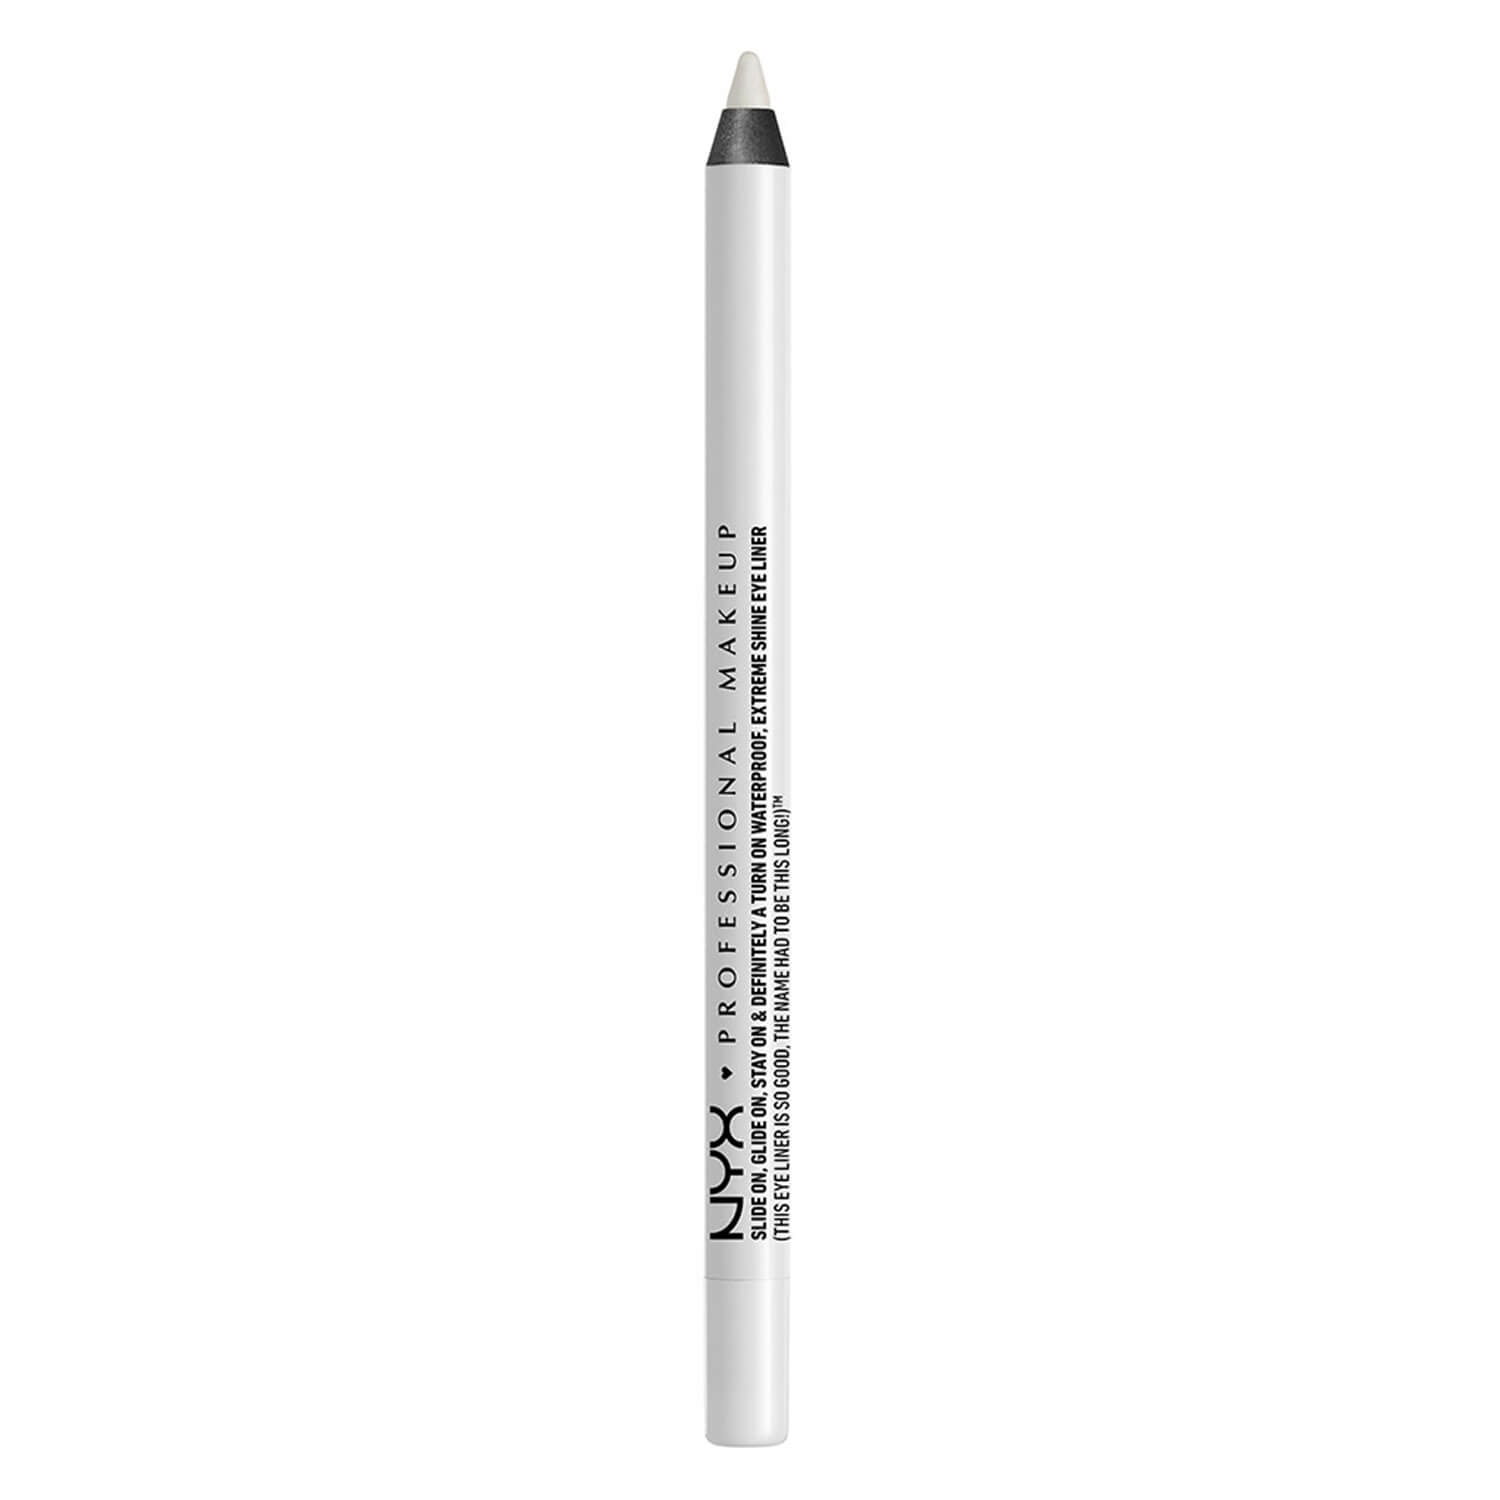 Slide On - Eye Pencil Pure White - 1.2g